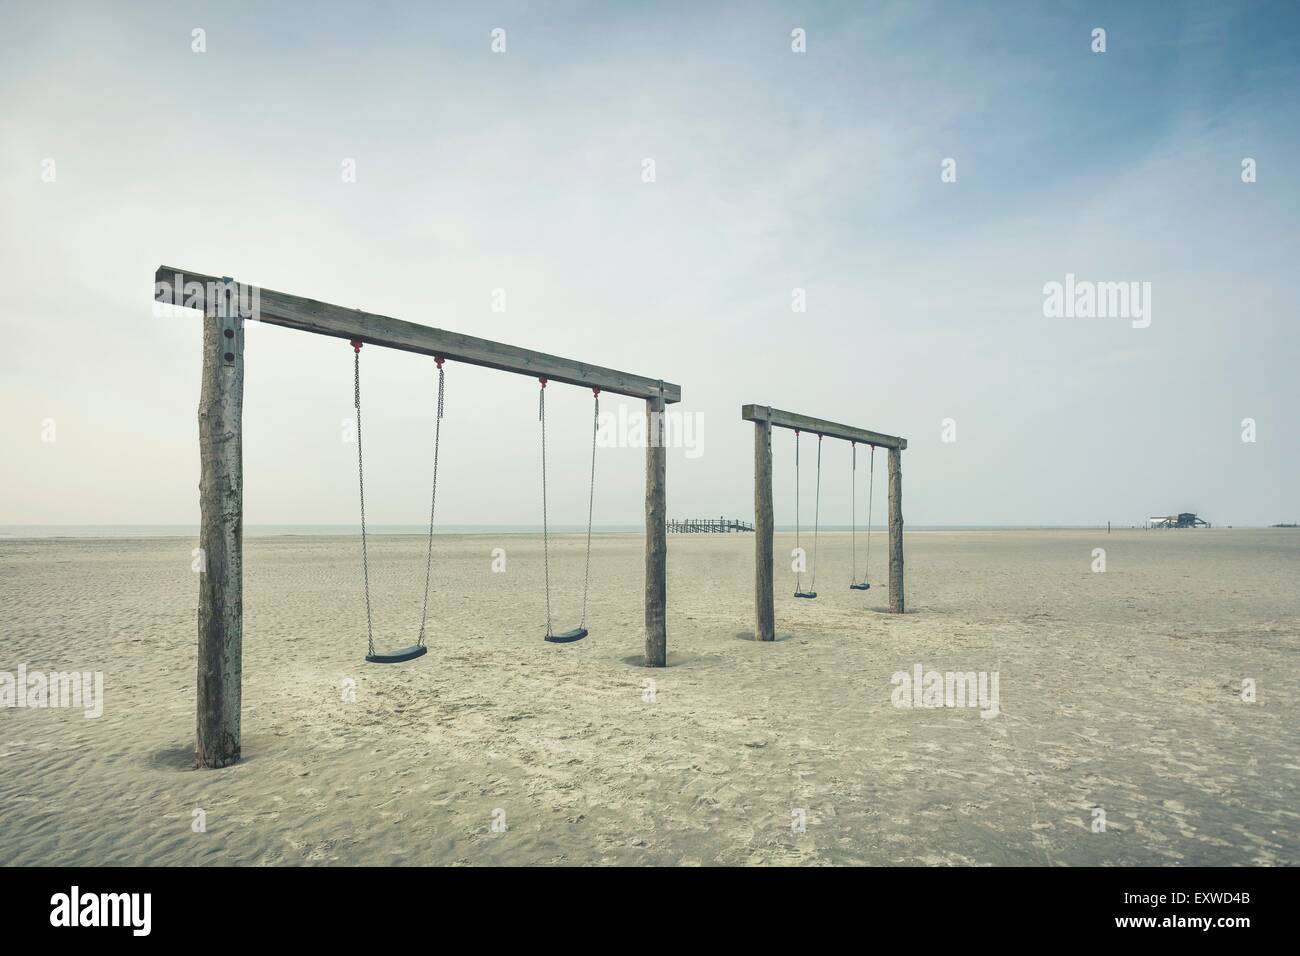 Empty swings on the beach of Sankt Peter-Ording, Schleswig-Holstein, Germany - Stock Image